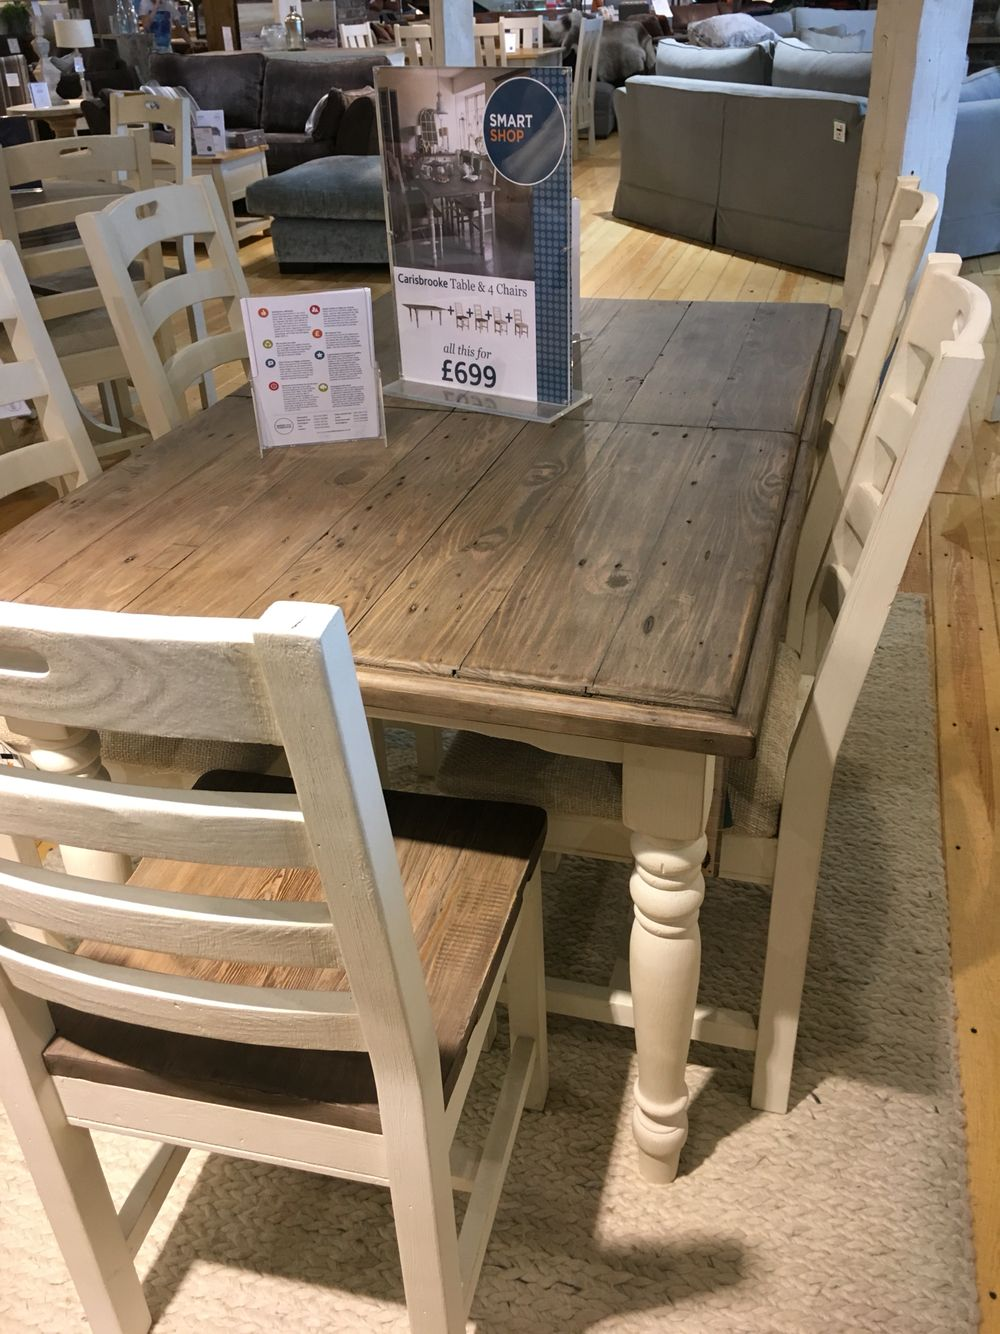 stonehouse furniture. Carisbrooke Dining Table And Chairs From Barker Stonehouse Furniture S